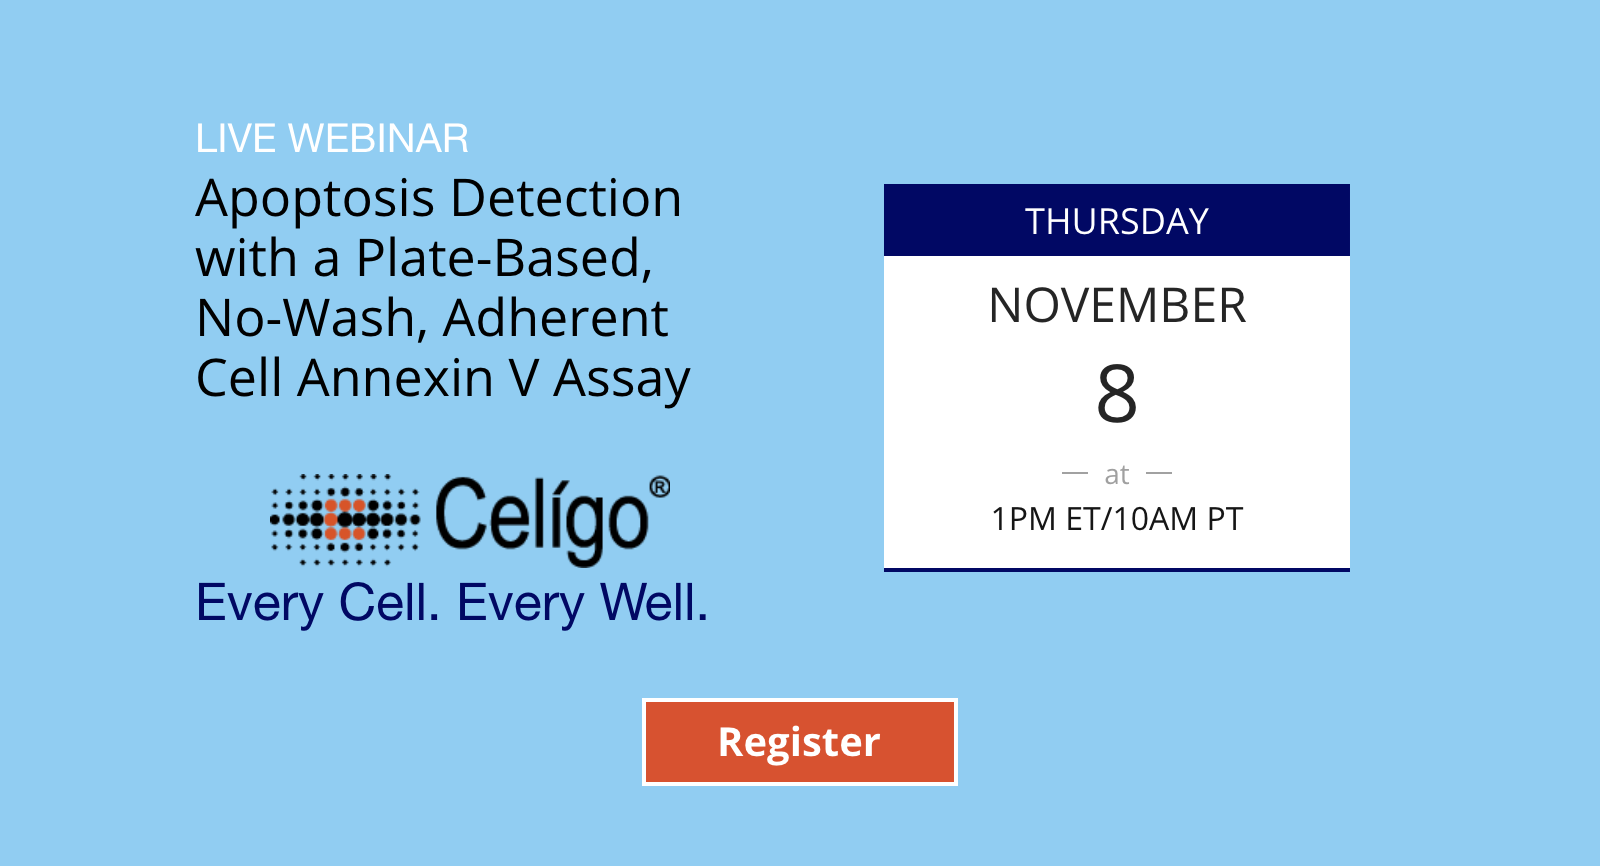 Apoptosis Detection with a Plate-Based, No-Wash, Adherent Cell Annexin V Assay